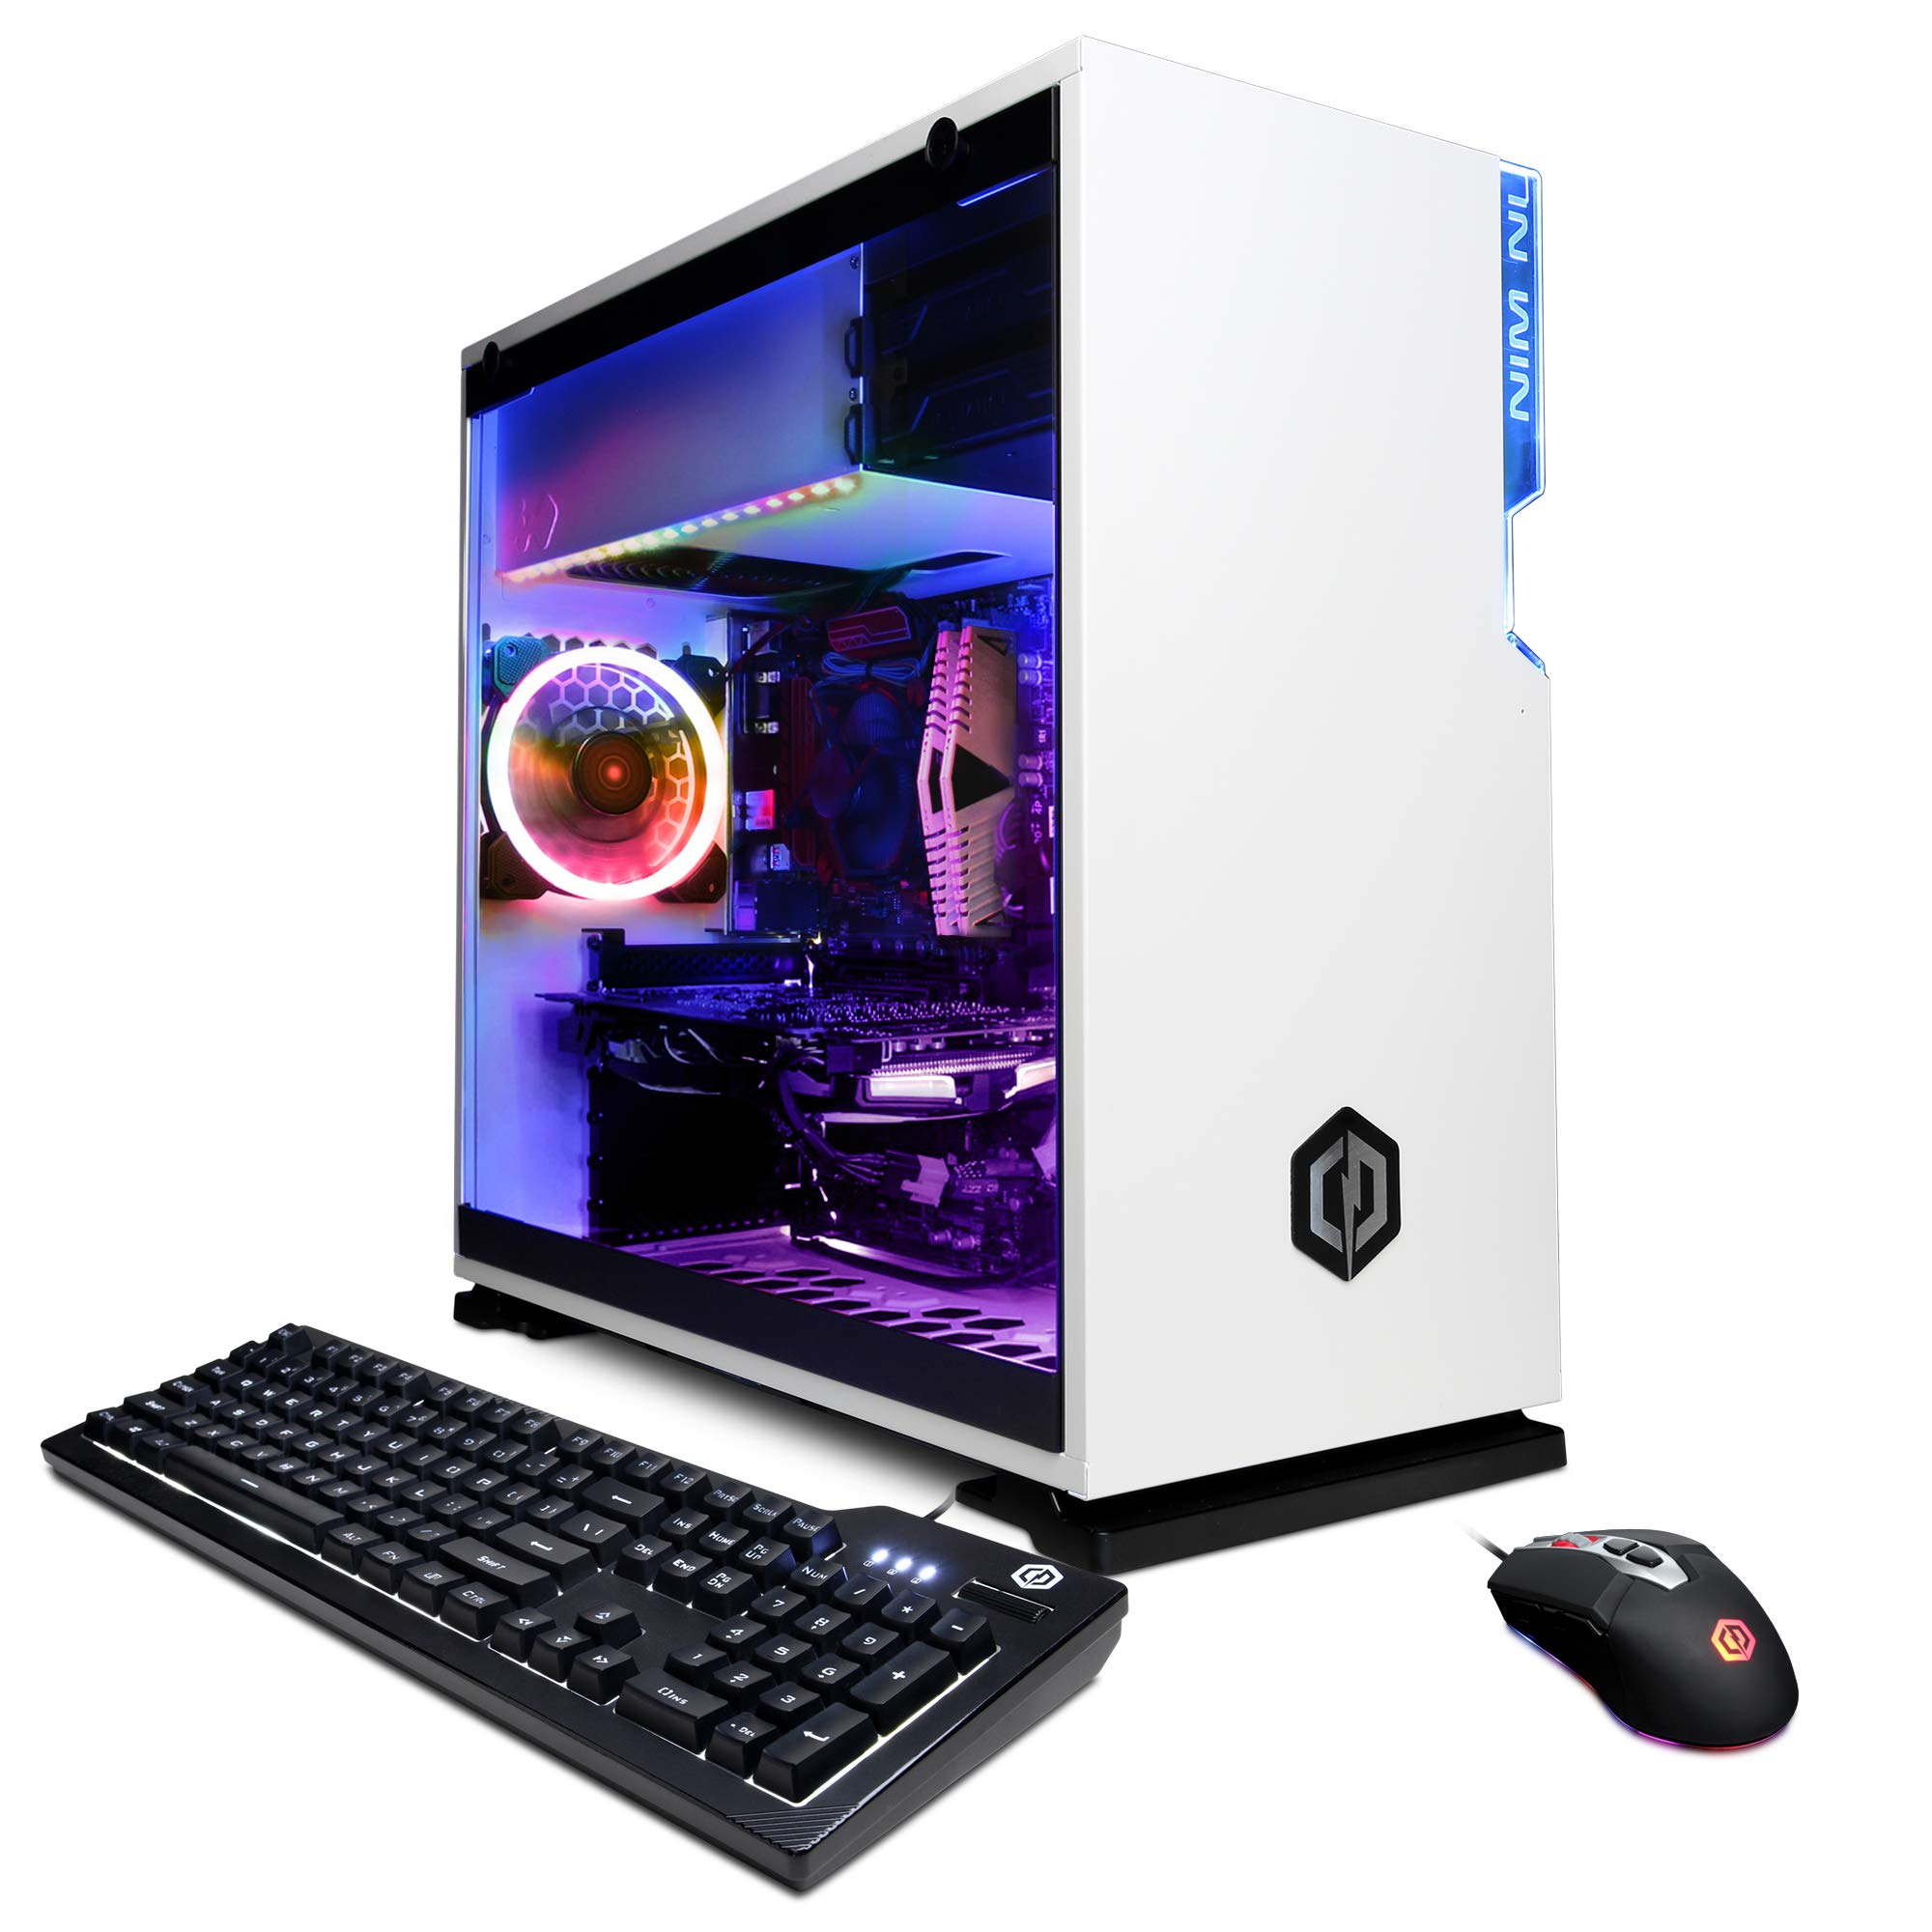 CyberpowerPC Gamer Xtreme Gaming PC, Intel Core i5-9600KF 3.7GHz, AMD Radeon RX 5500 XT 4GB, 16GB DDR4, 500GB PCI-E NVMe SSD, WiFi Ready & Win 10 Home (GXi11420CPG, White)